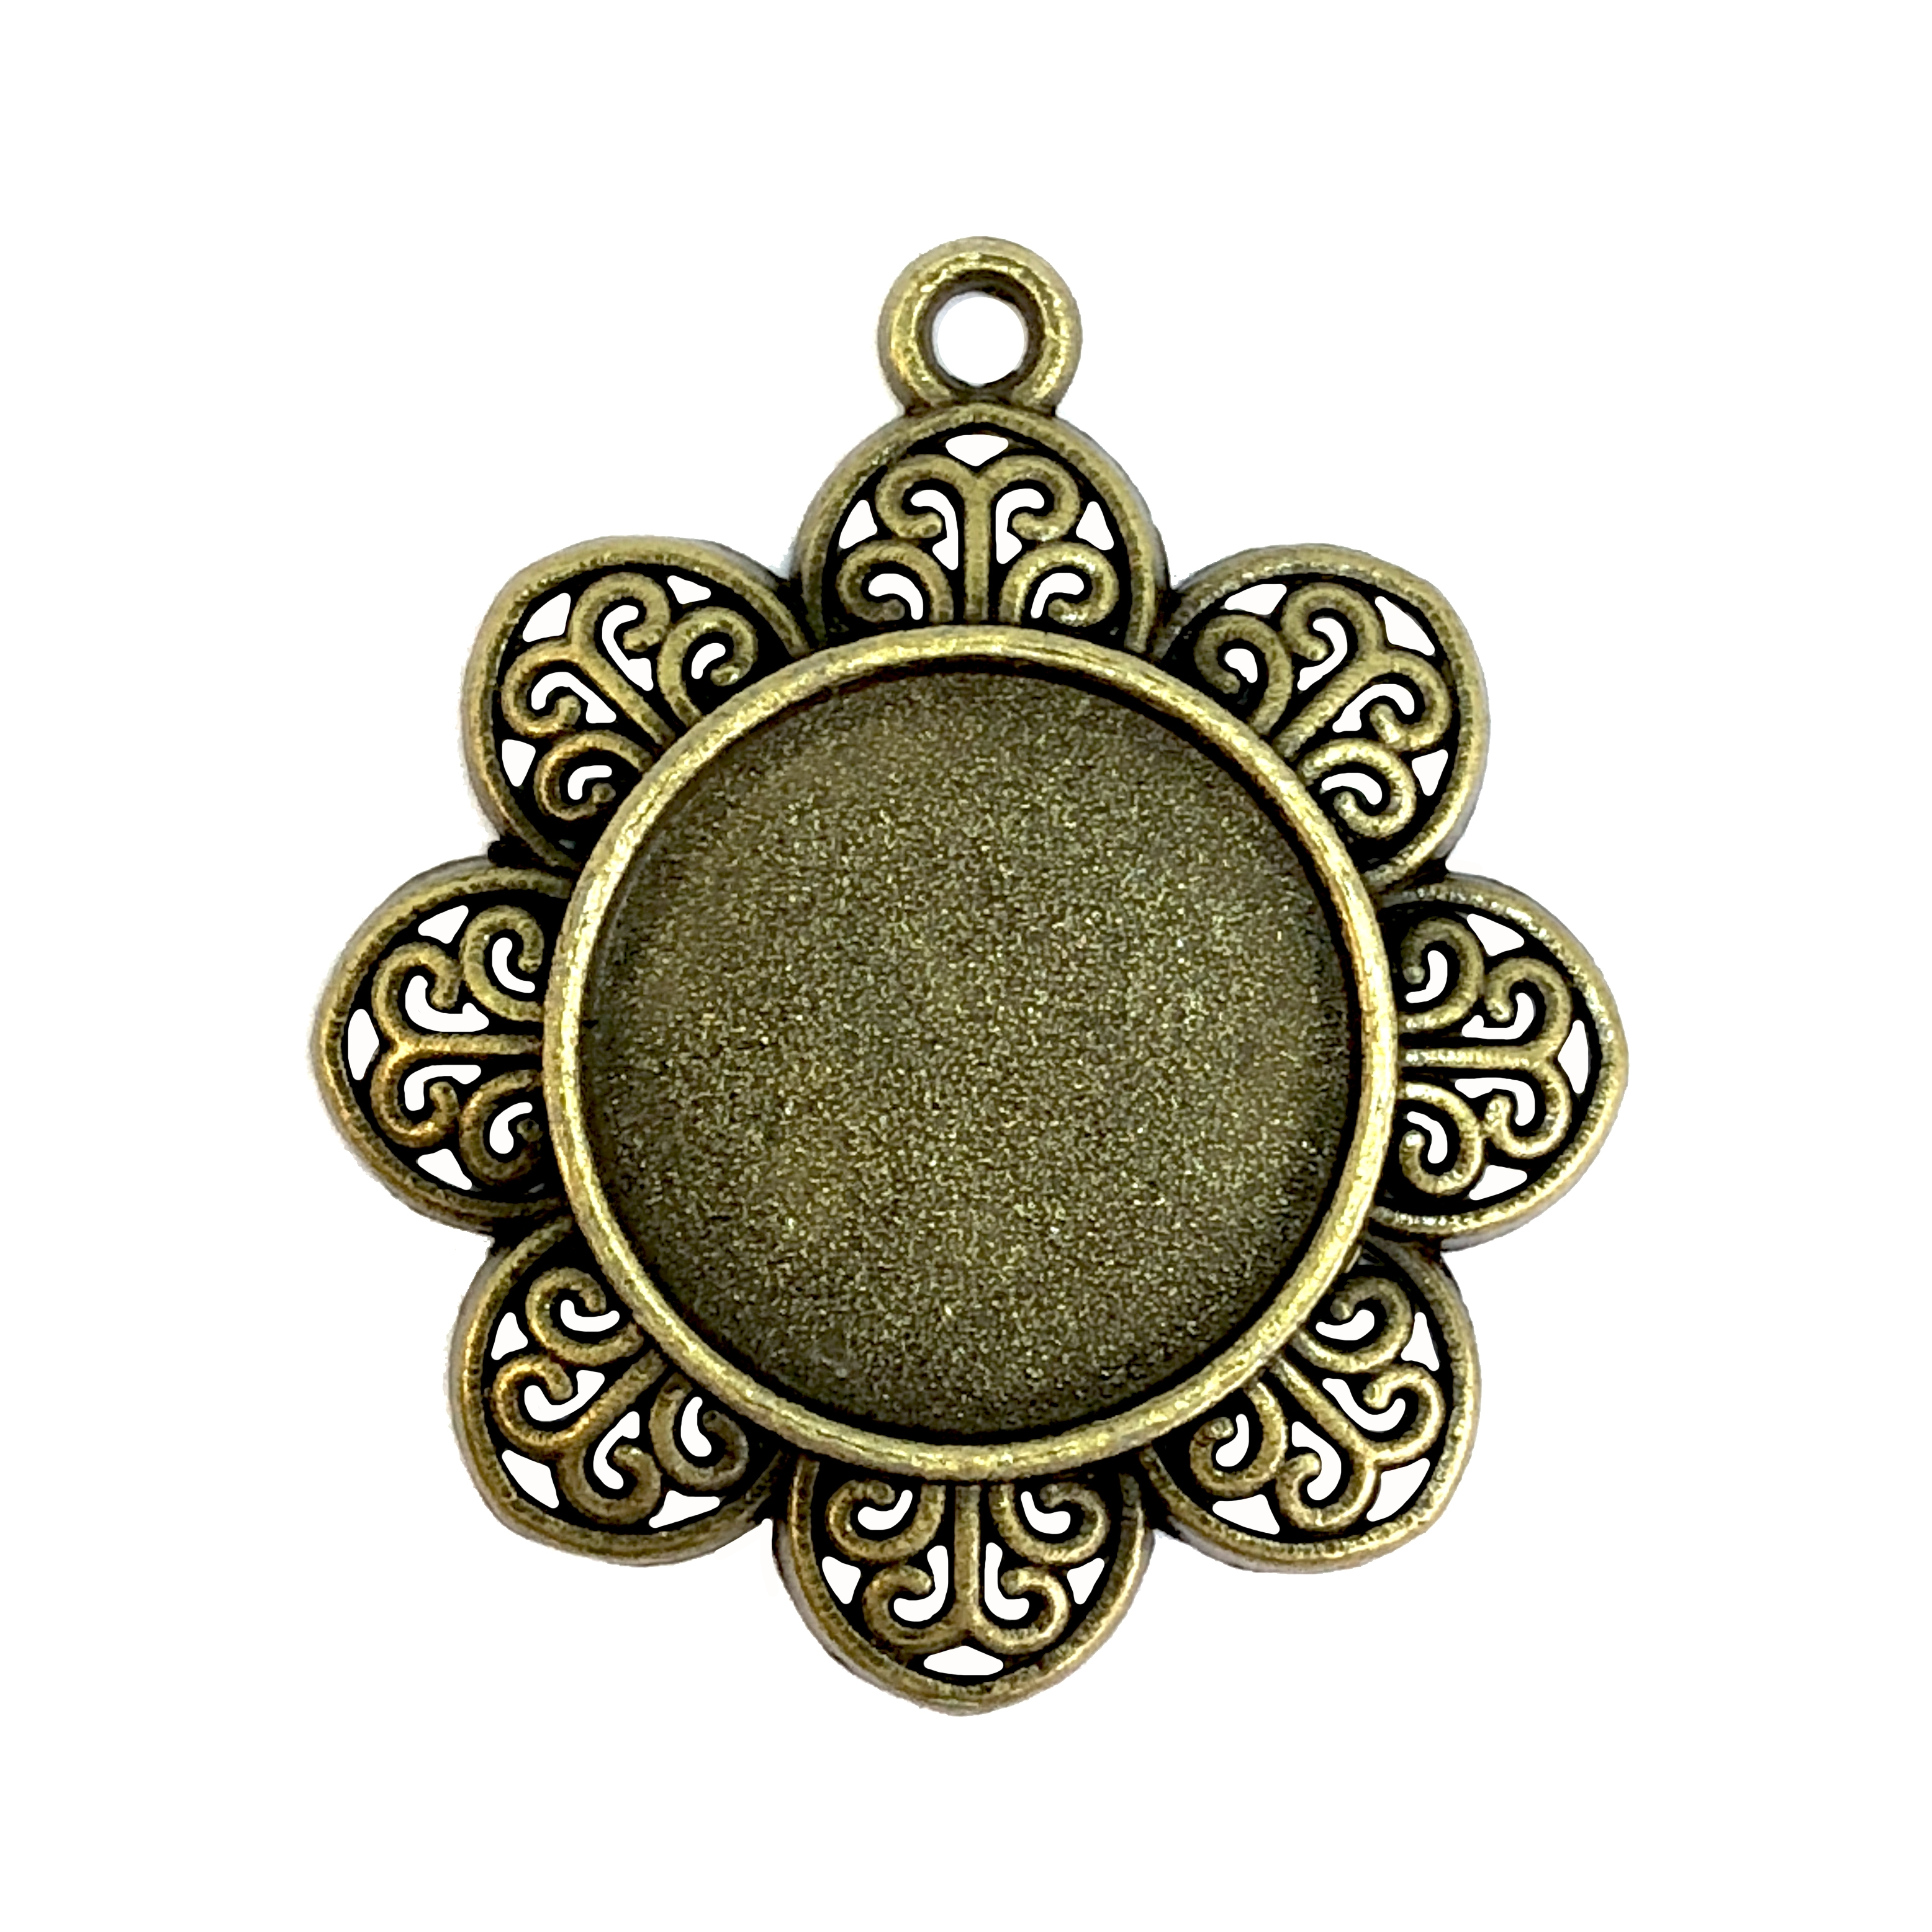 Flower Pendant Mount, floral bezel, 07897, mount, ceralun, jewelry supplies, B'sue Boutiques, 21mm mount, flower, bronze finish, pendant, charm